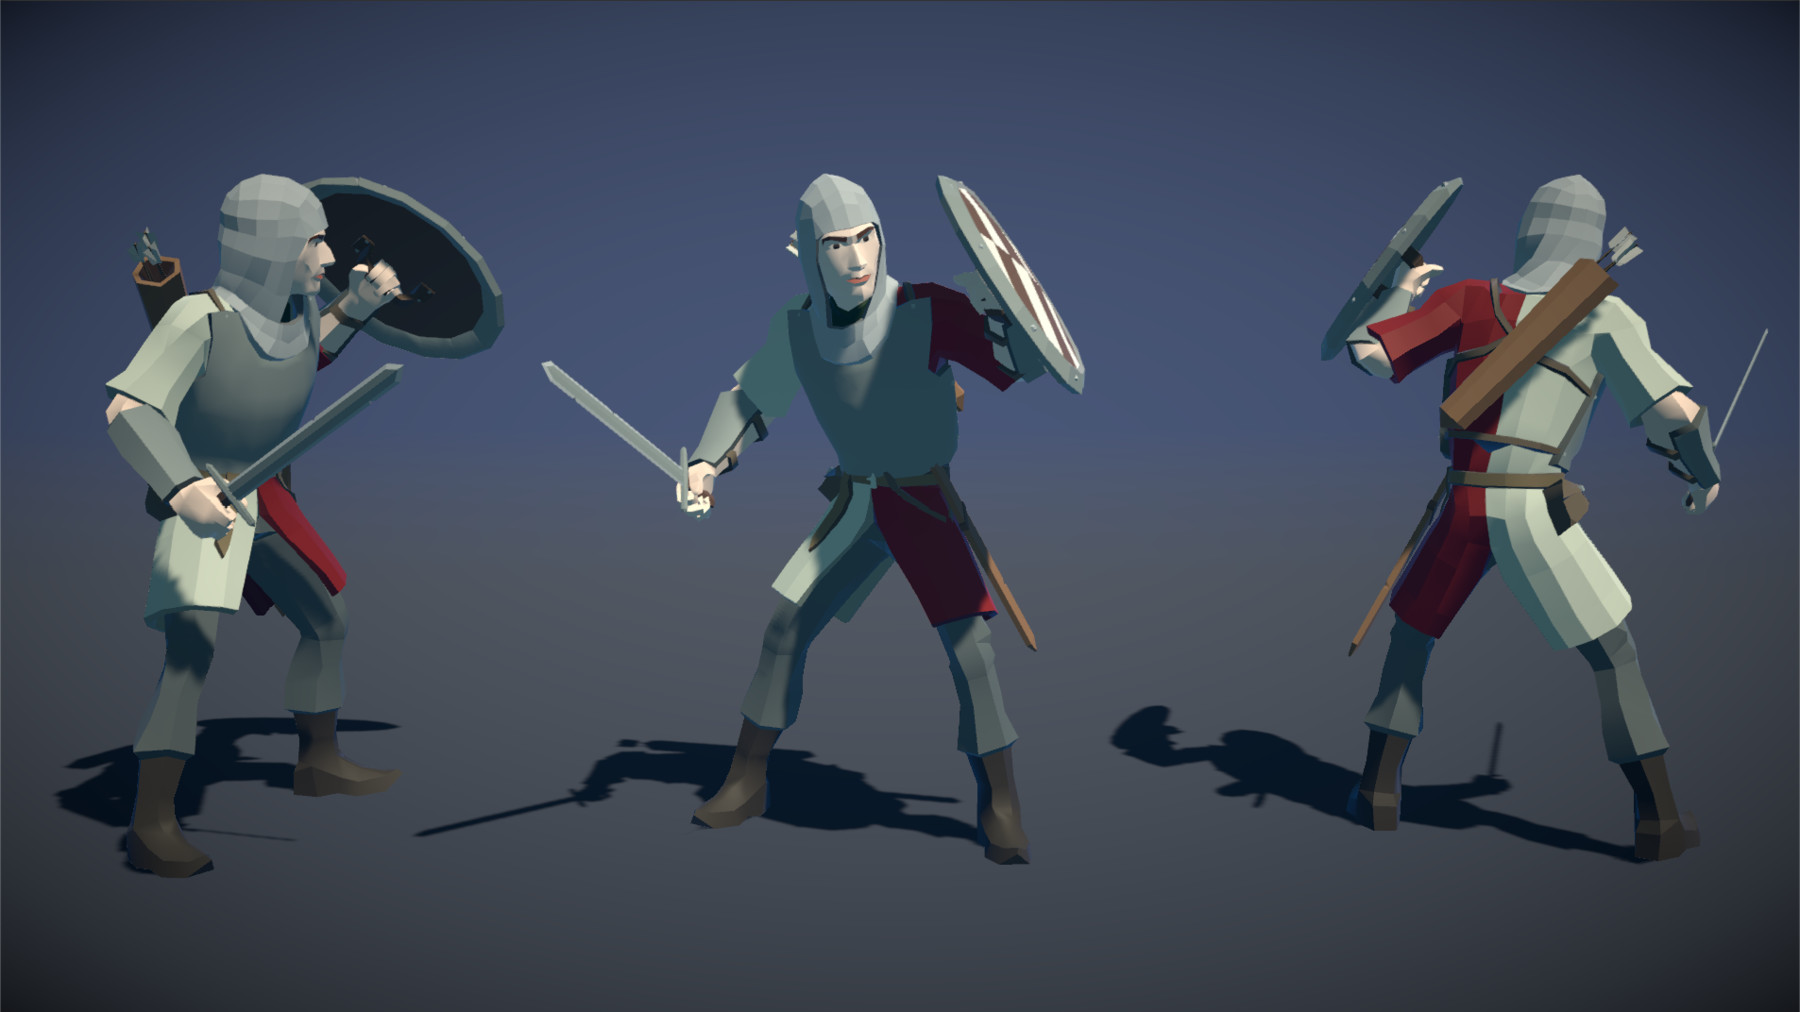 Pt medieval lowpoly characters soldier 01